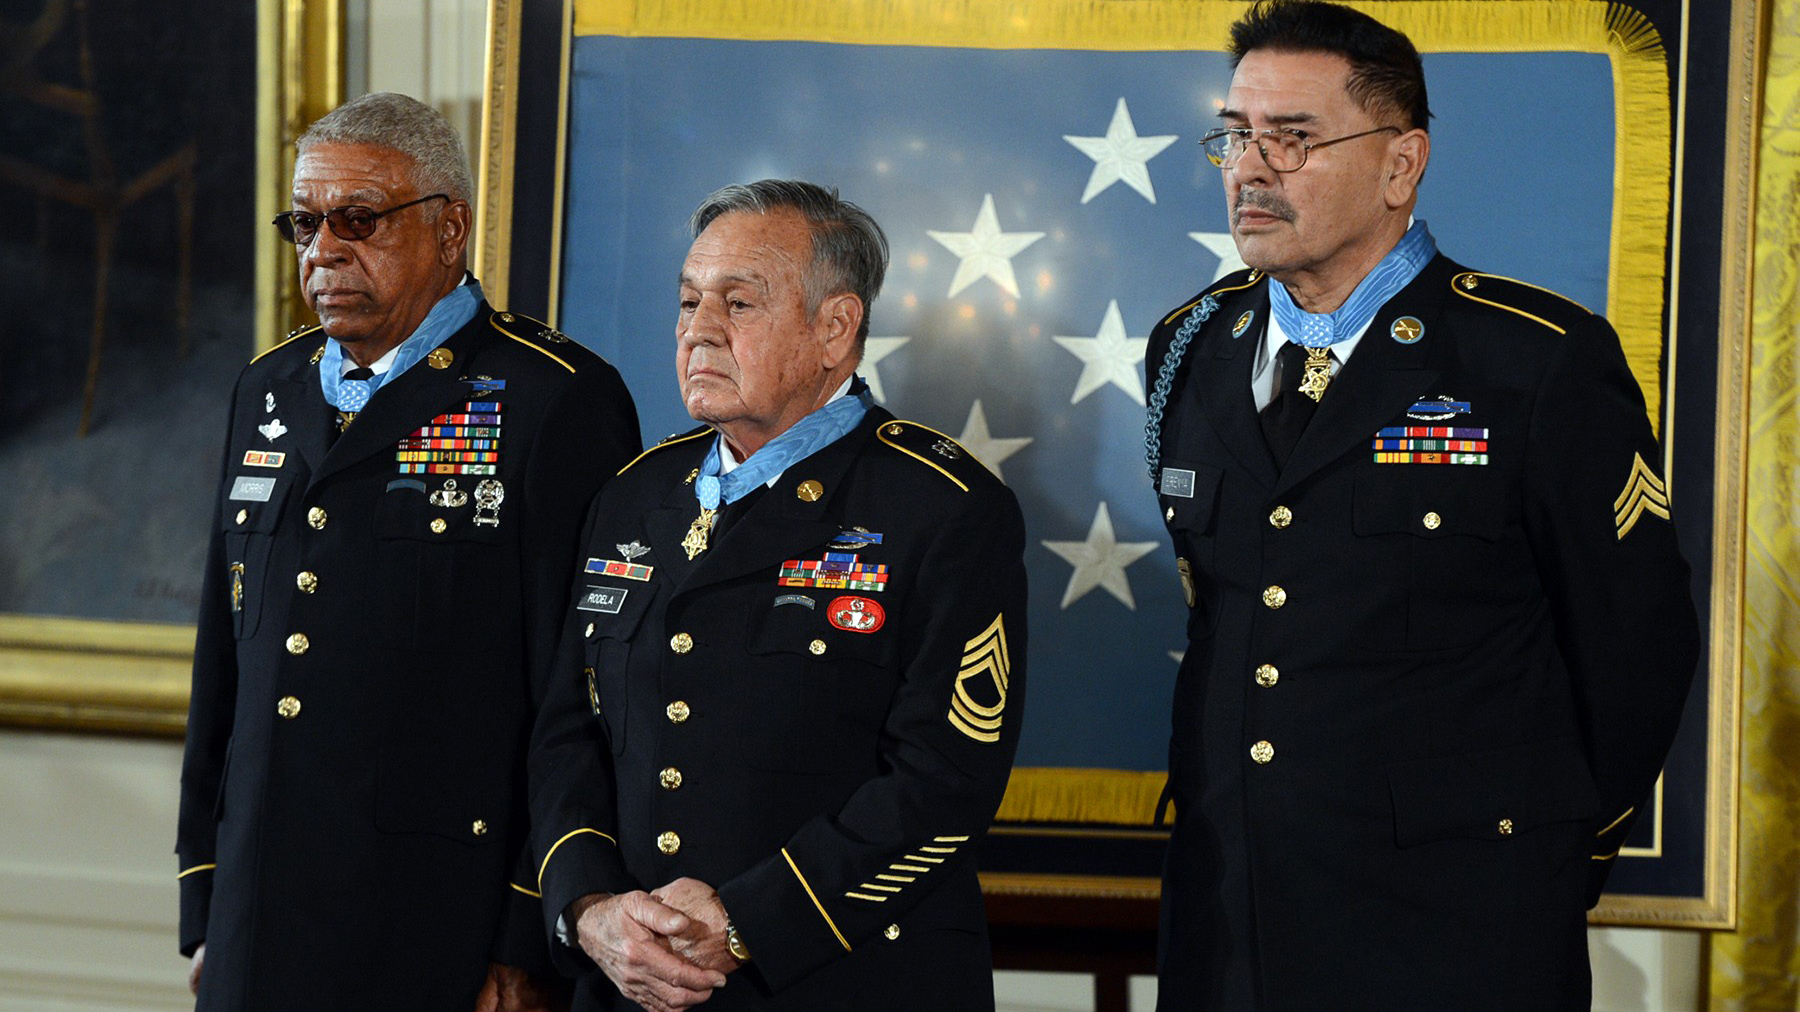 Army to Review Distinguished Service Cross Awards